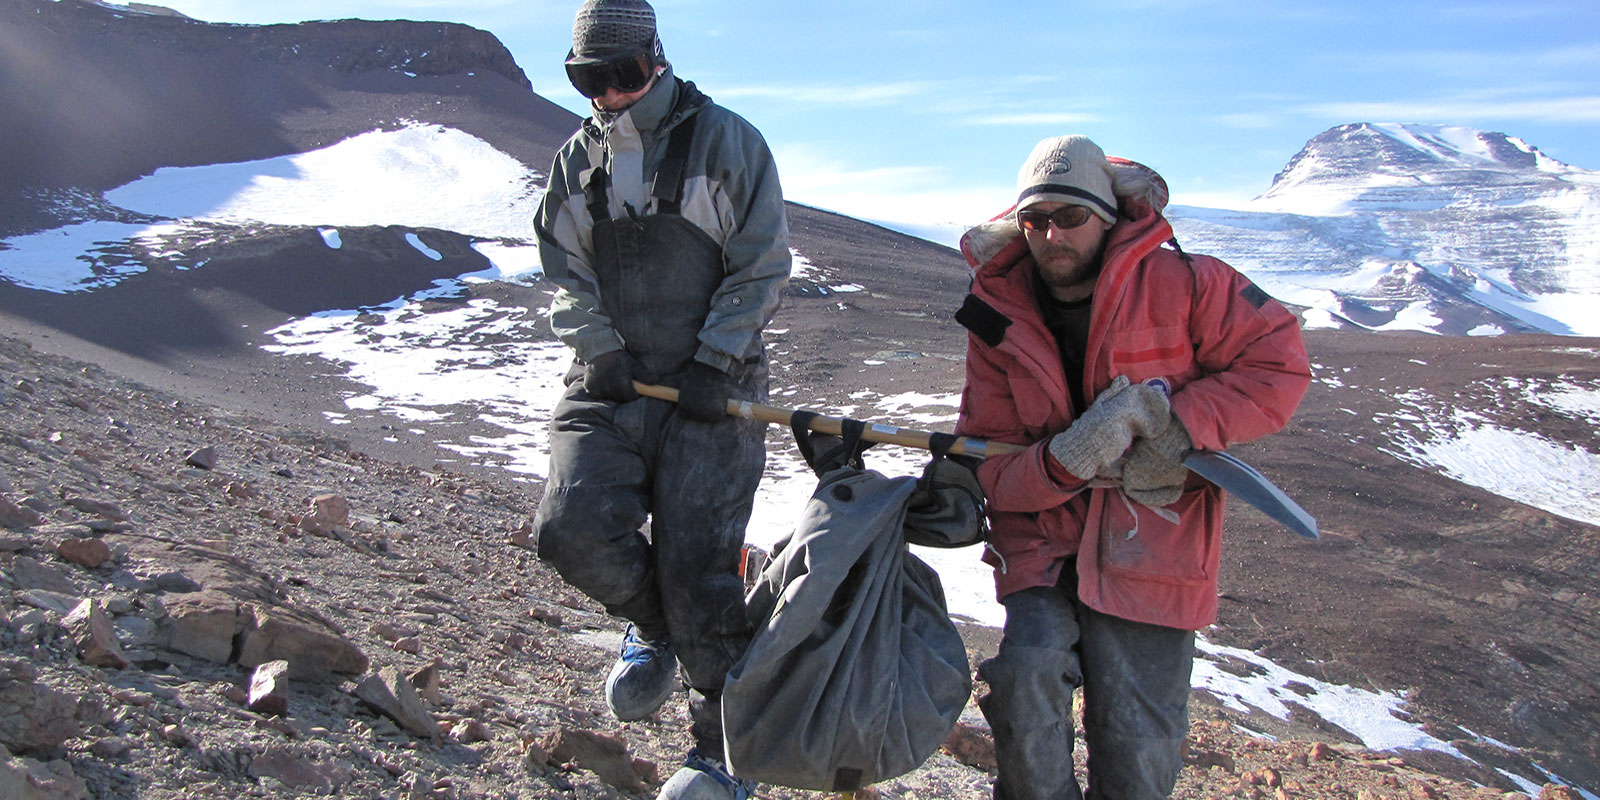 Two men use a shovel to carry a heavy fossil encased in rock out of the Antarctic landscape